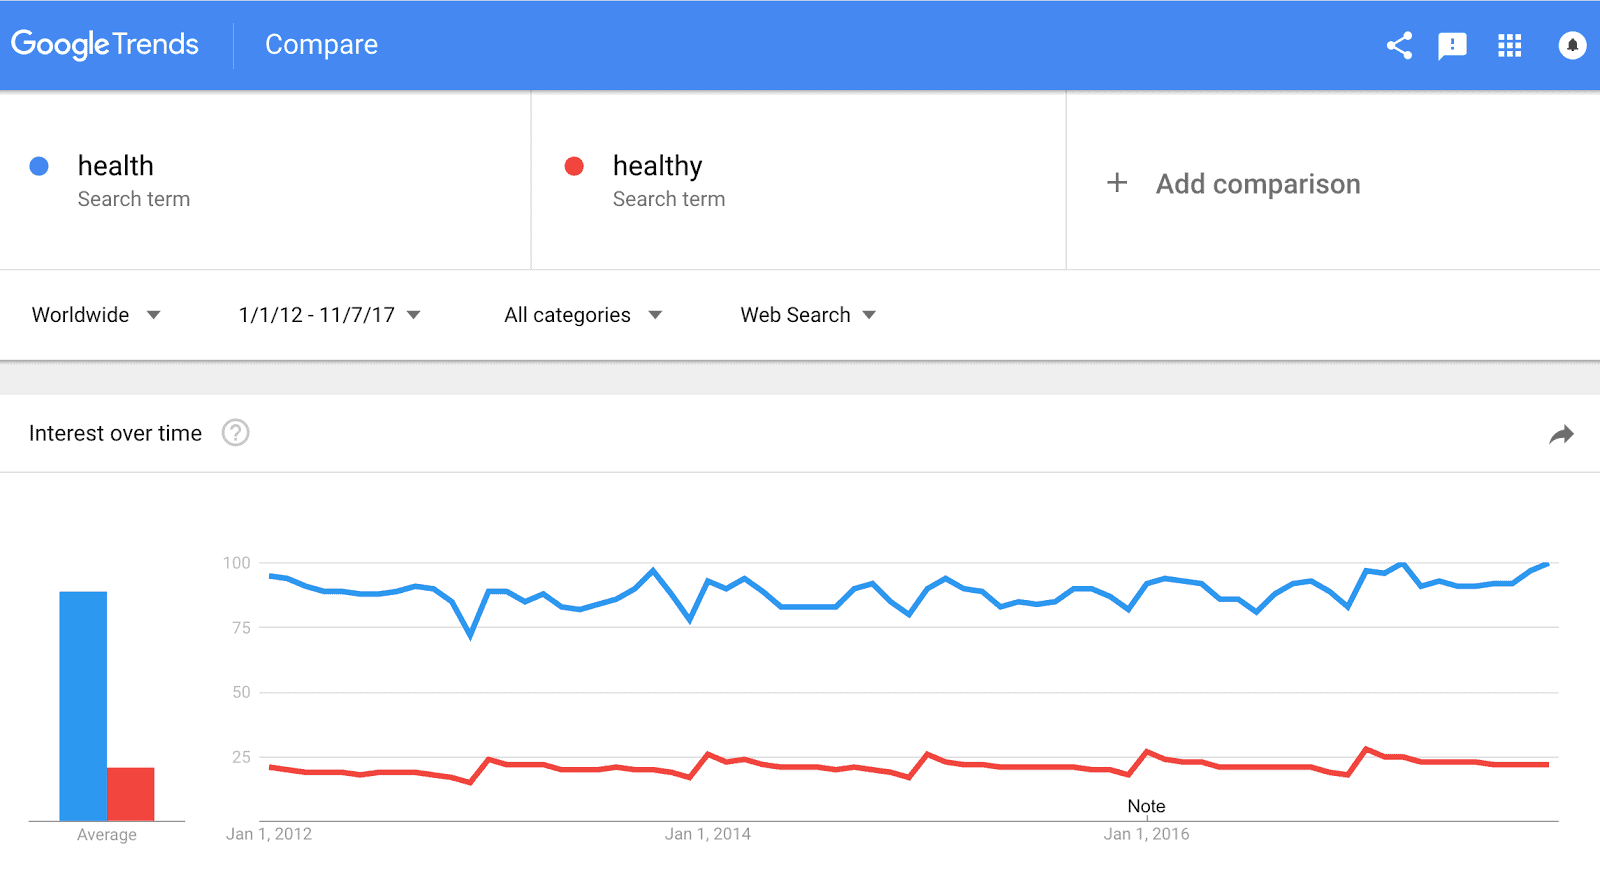 Google Trends Health